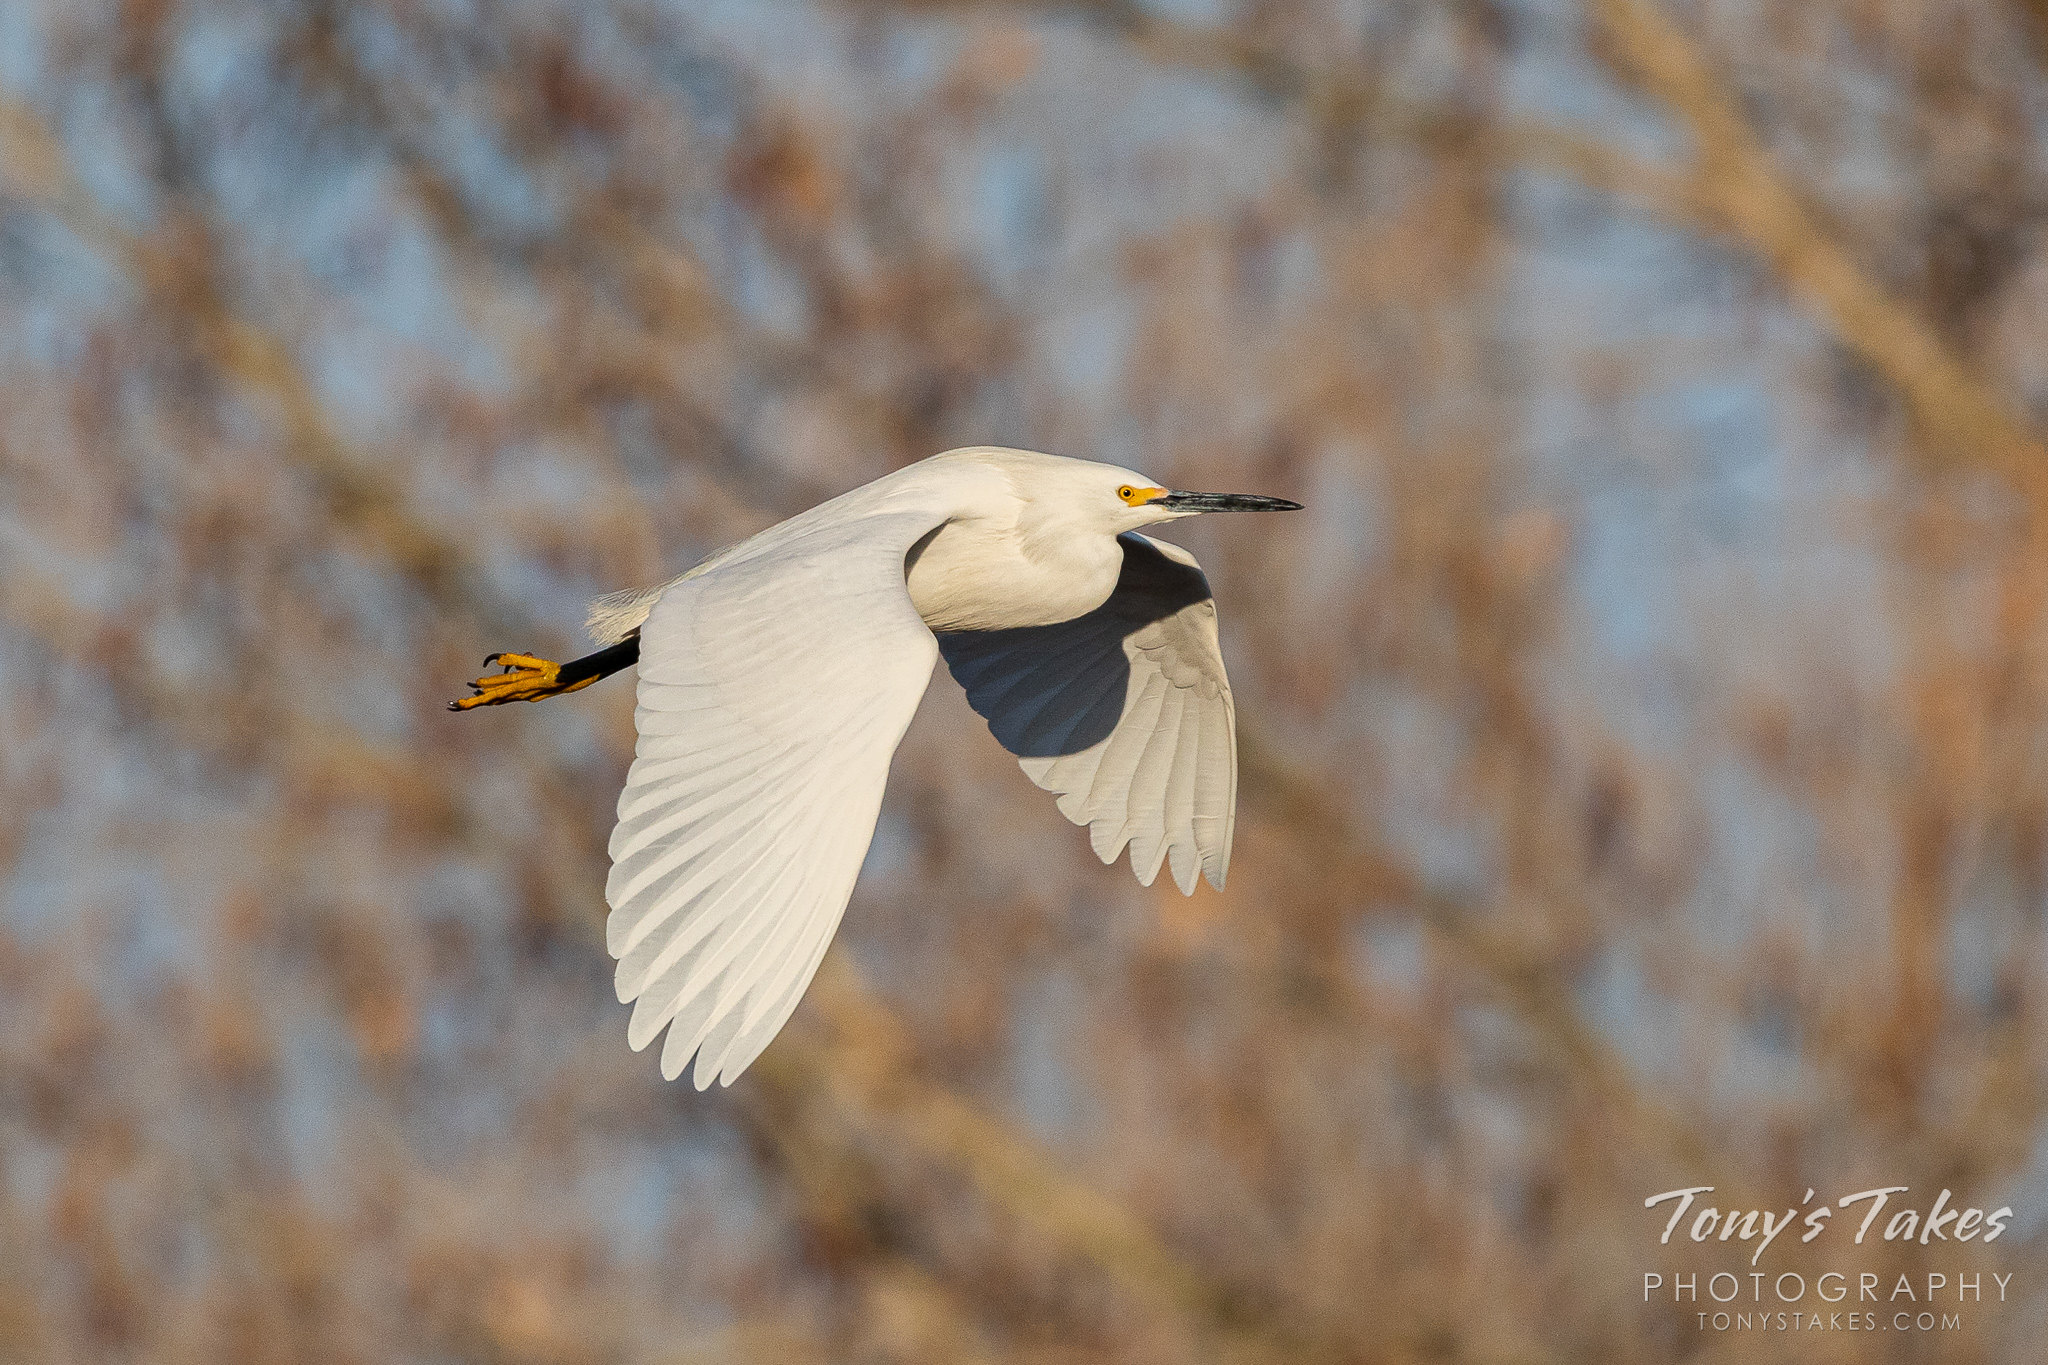 A snowy egret flies along the South Platte River in Colorado. (© Tony's Takes)